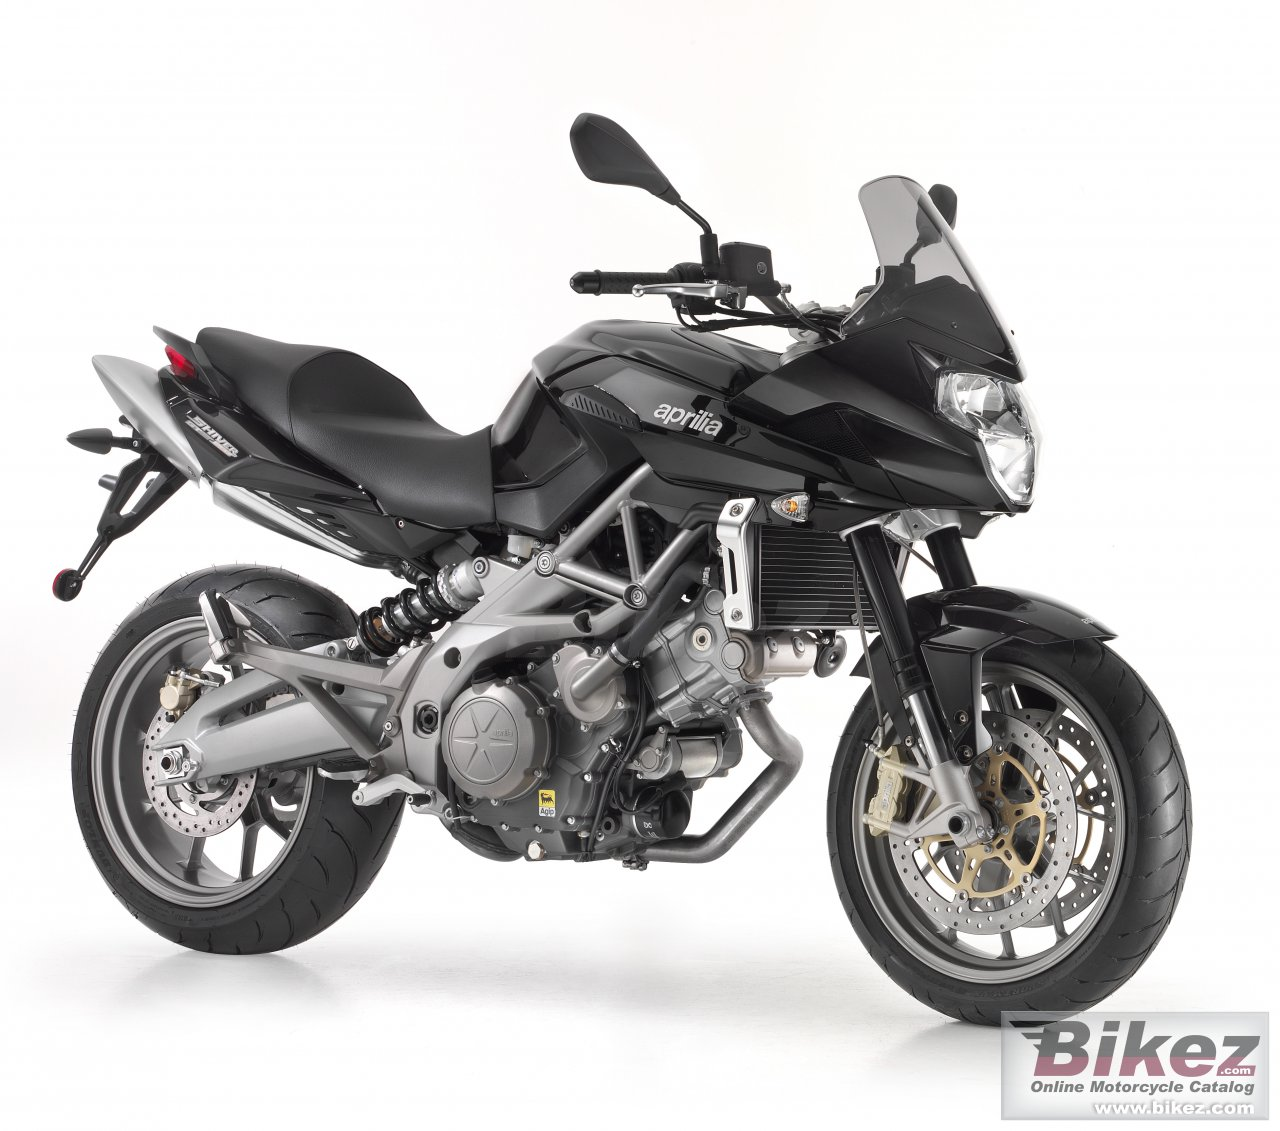 Big Aprilia shiver 750 gt abs picture and wallpaper from Bikez.com